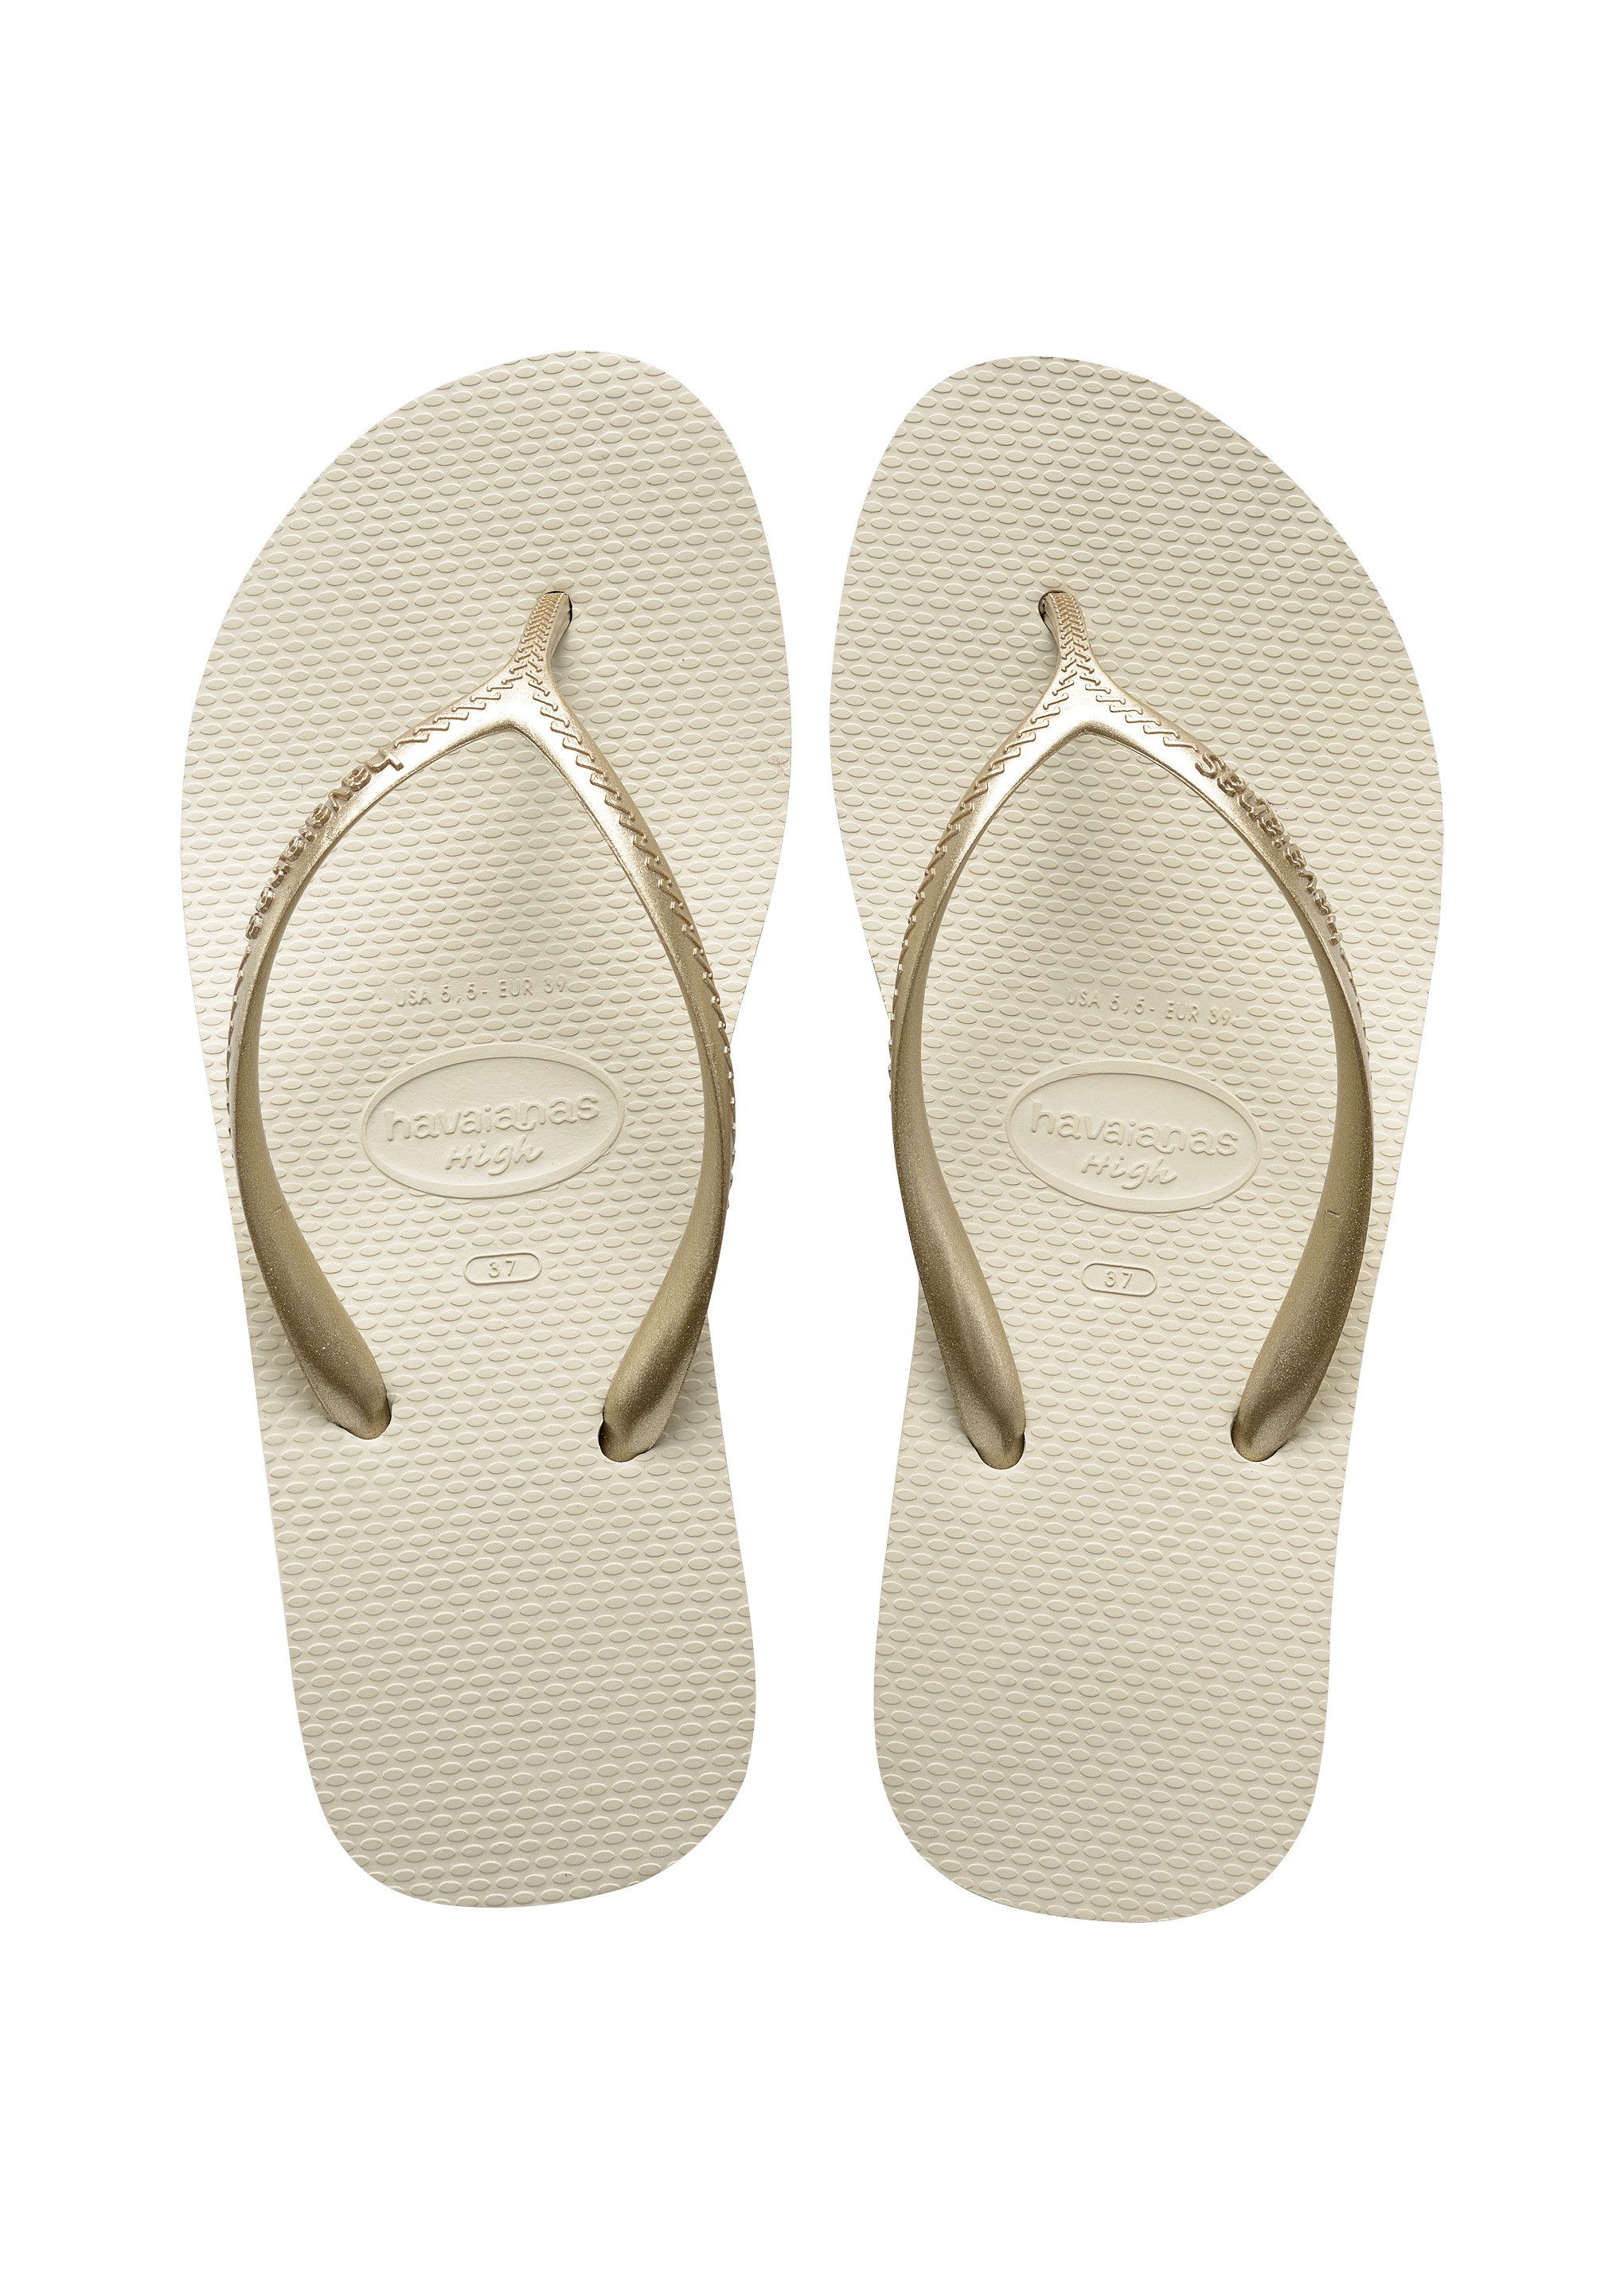 ad748f4cf03dfd Havaianas High Fashion Sandal Beige Price From  48